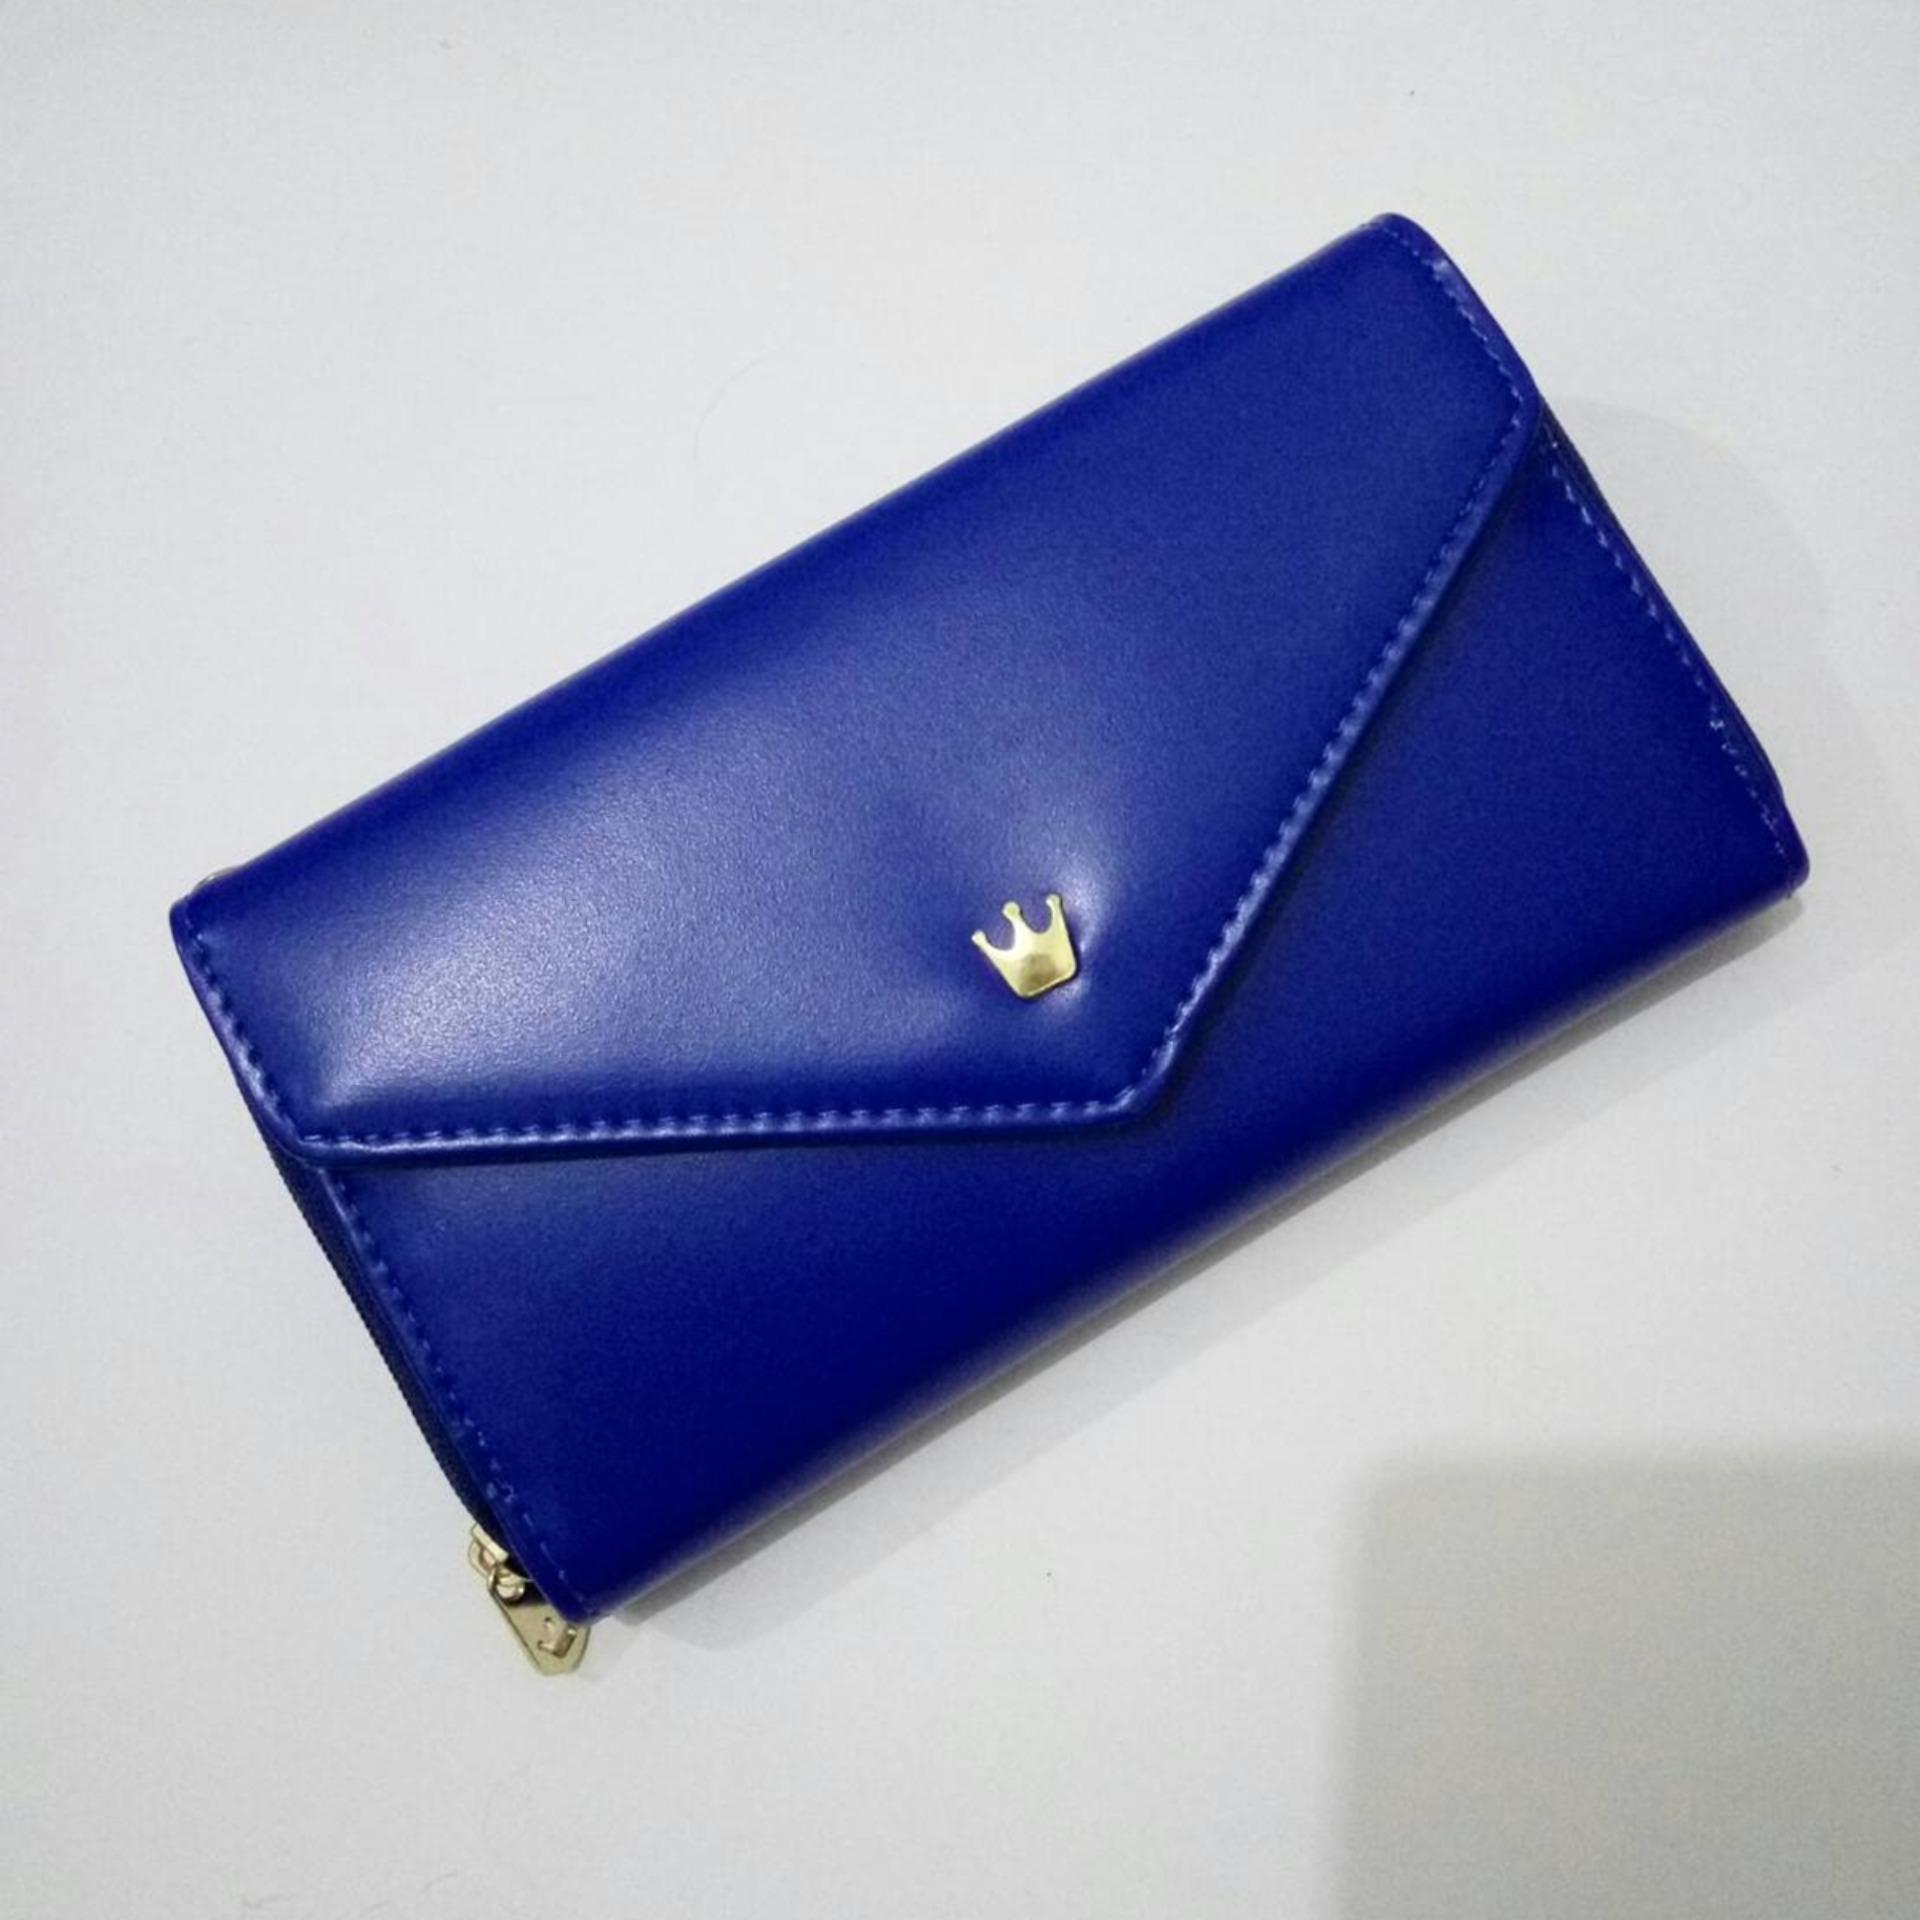 Harga Jims Honey Dompet Fashion Queenie Wallet Navy Lengkap